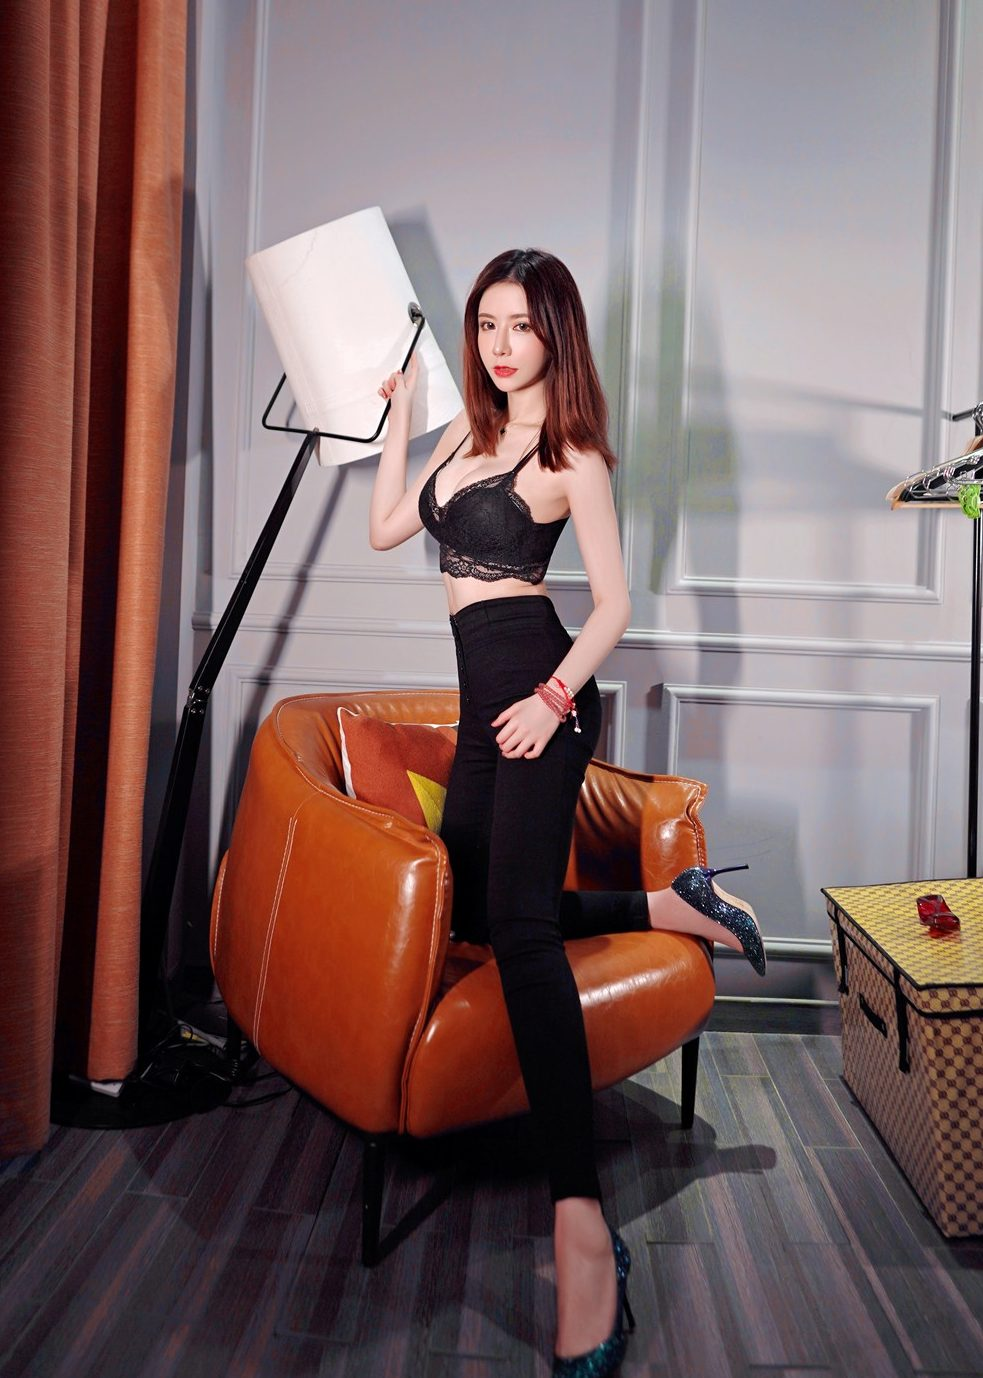 evelyn sexy party outfit asian girl